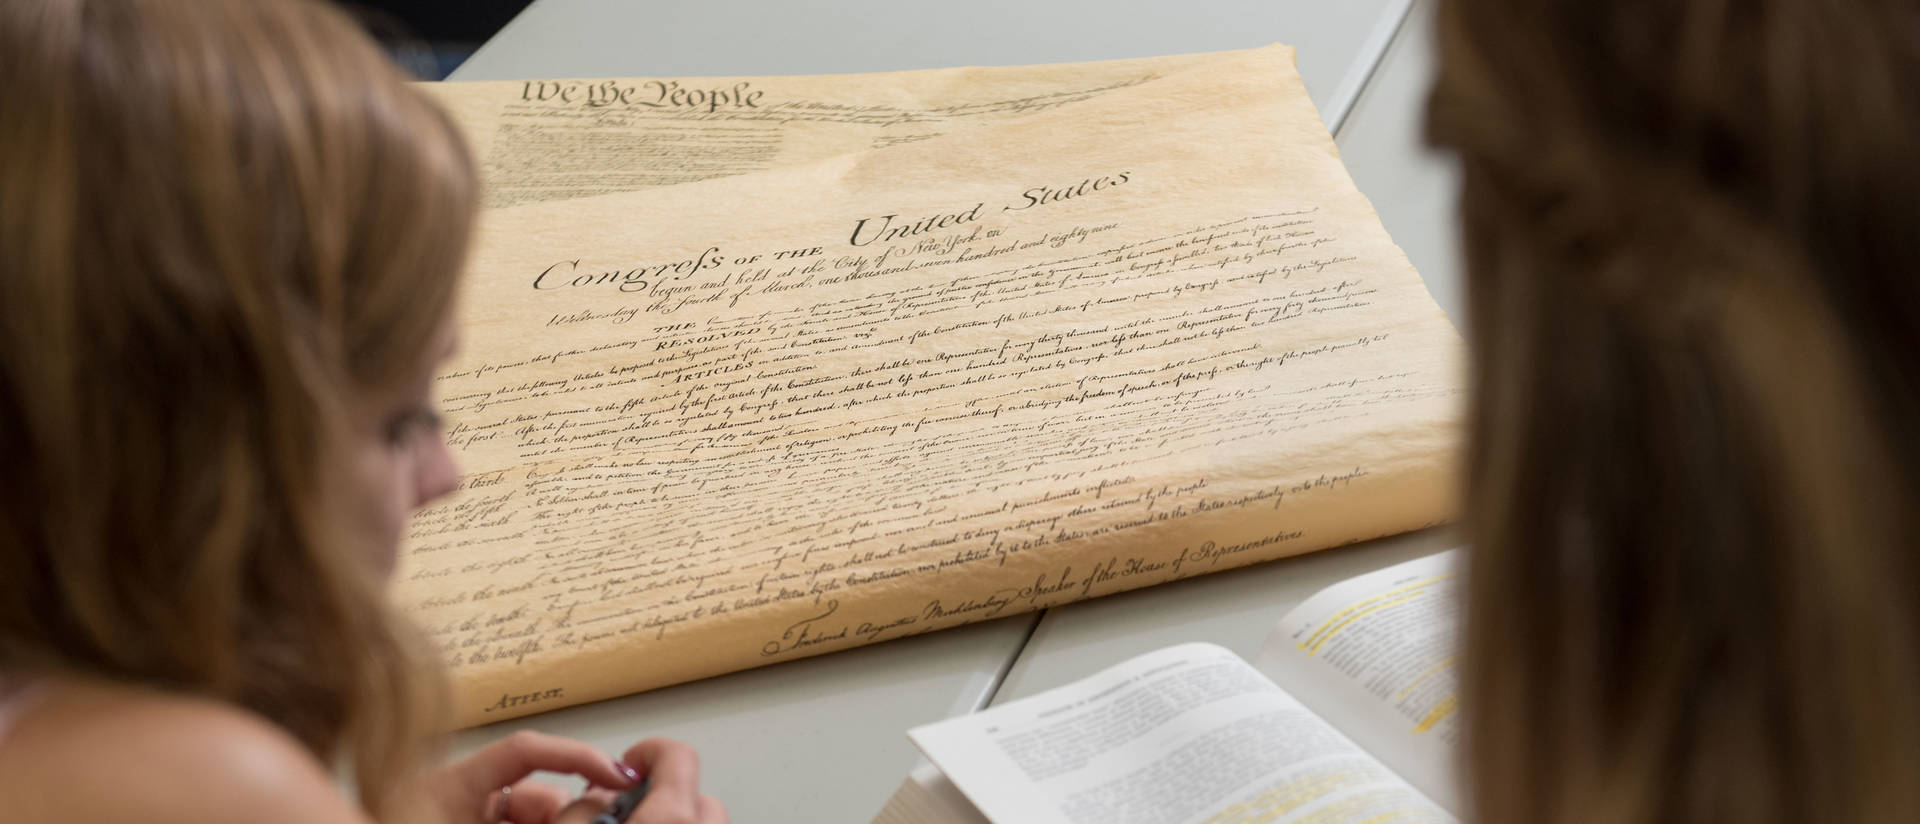 UW-Eau Claire students discuss U.S. Constitution